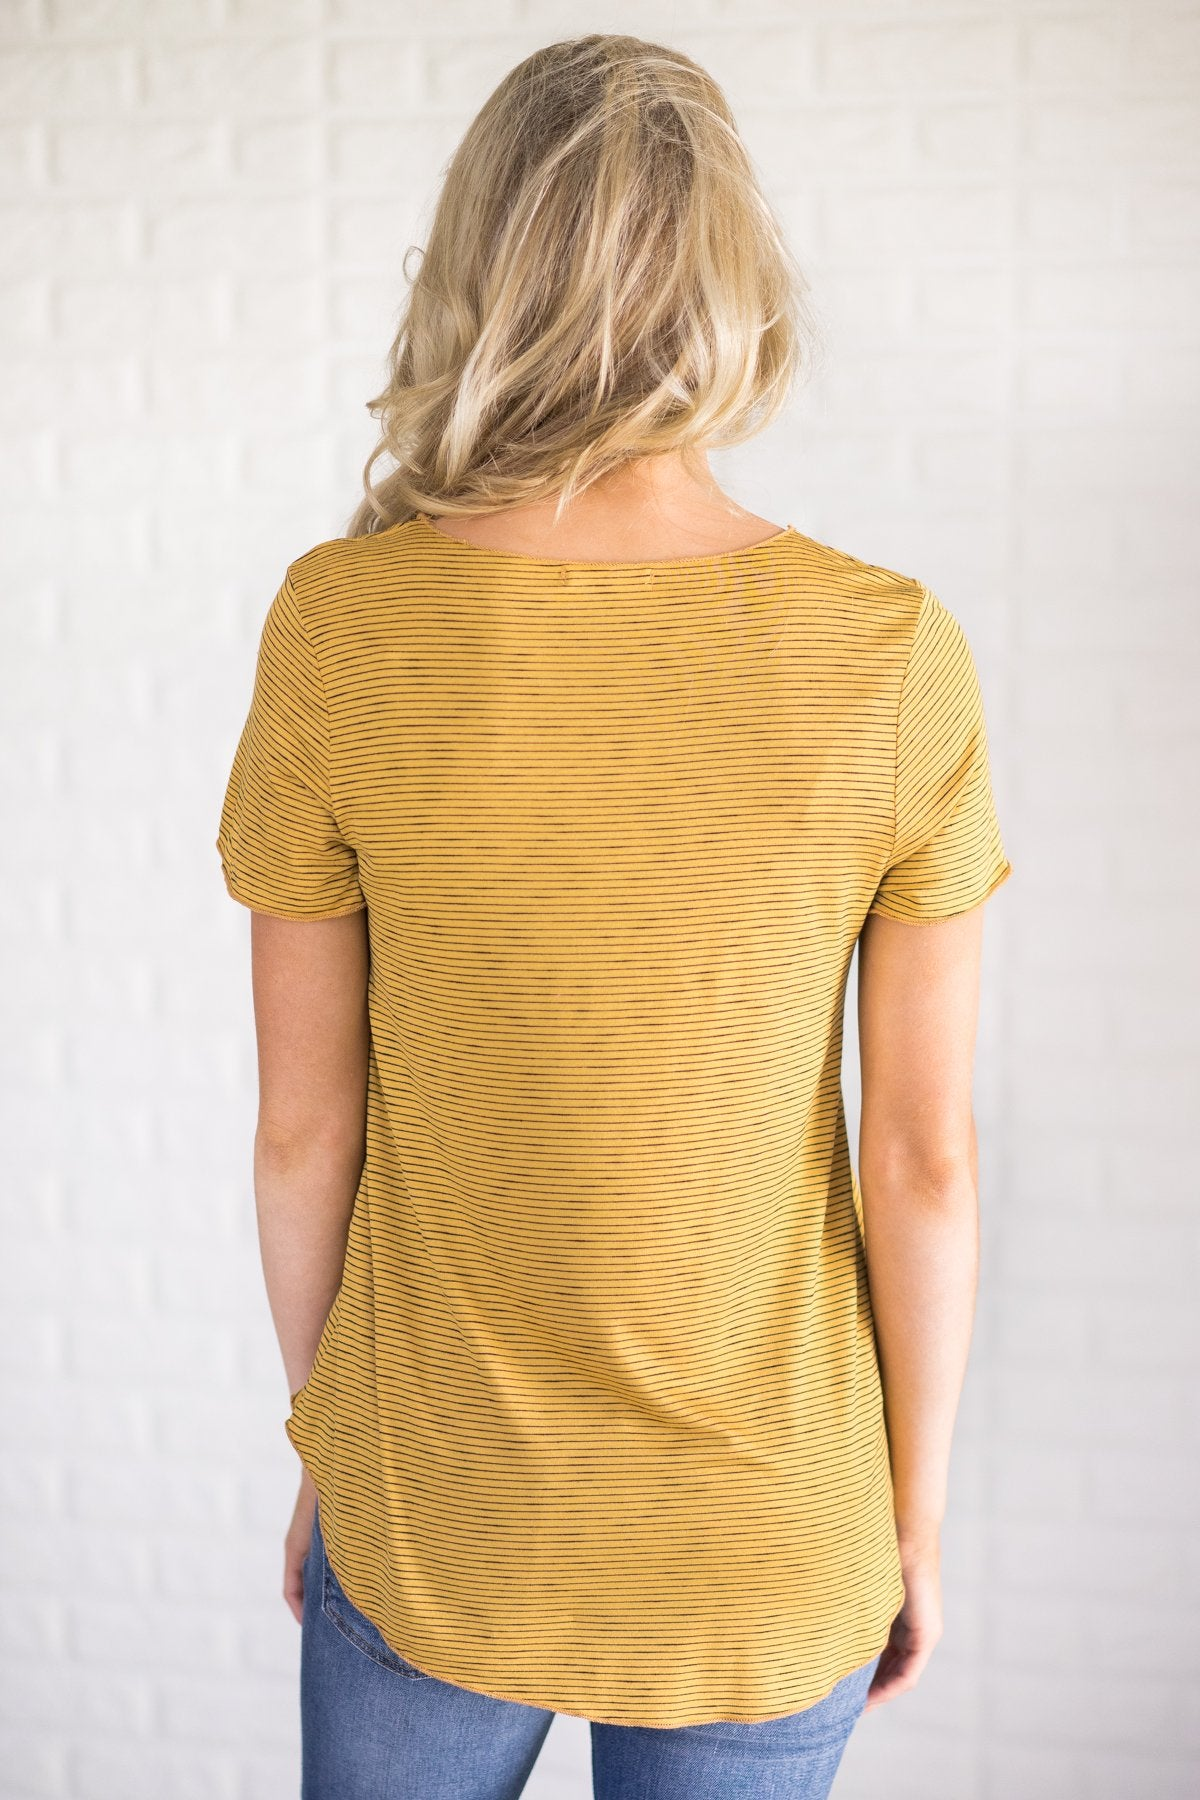 Fit to Me Striped Short Sleeve Tee ~ Yellow